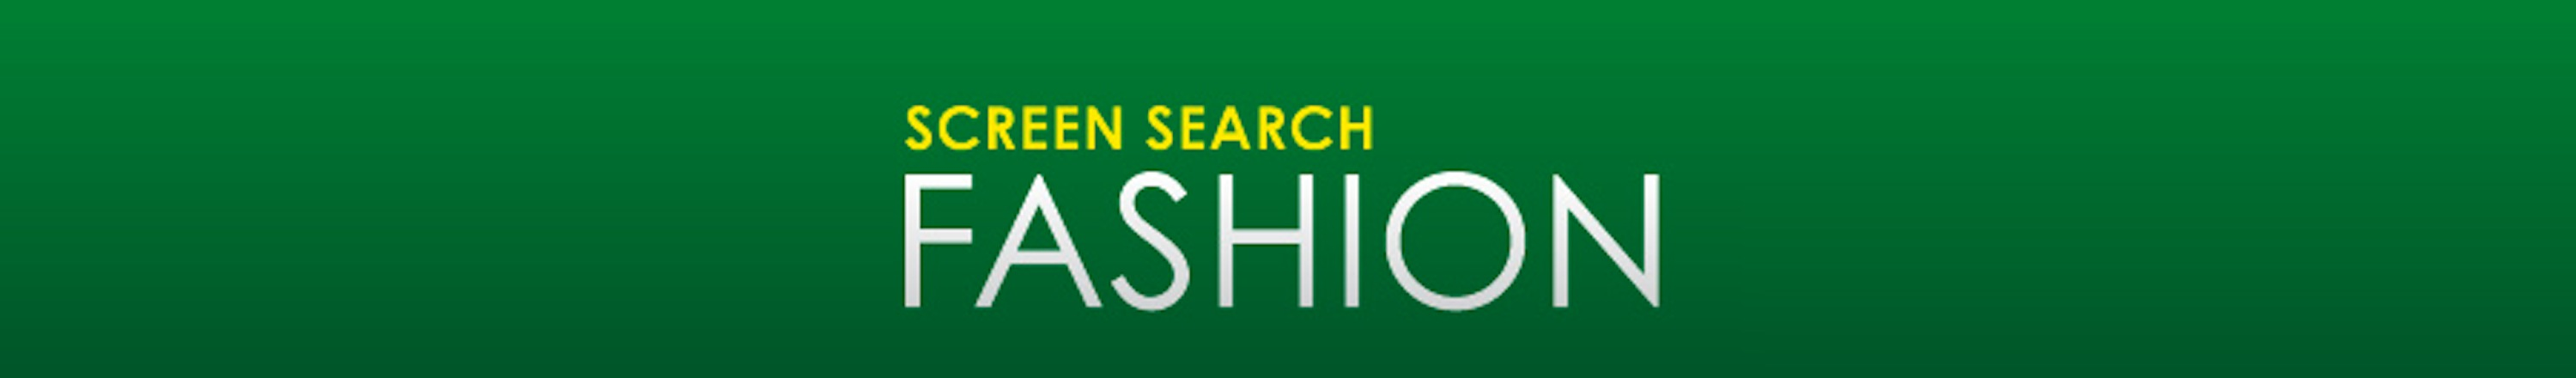 Screen Search Fashion header image